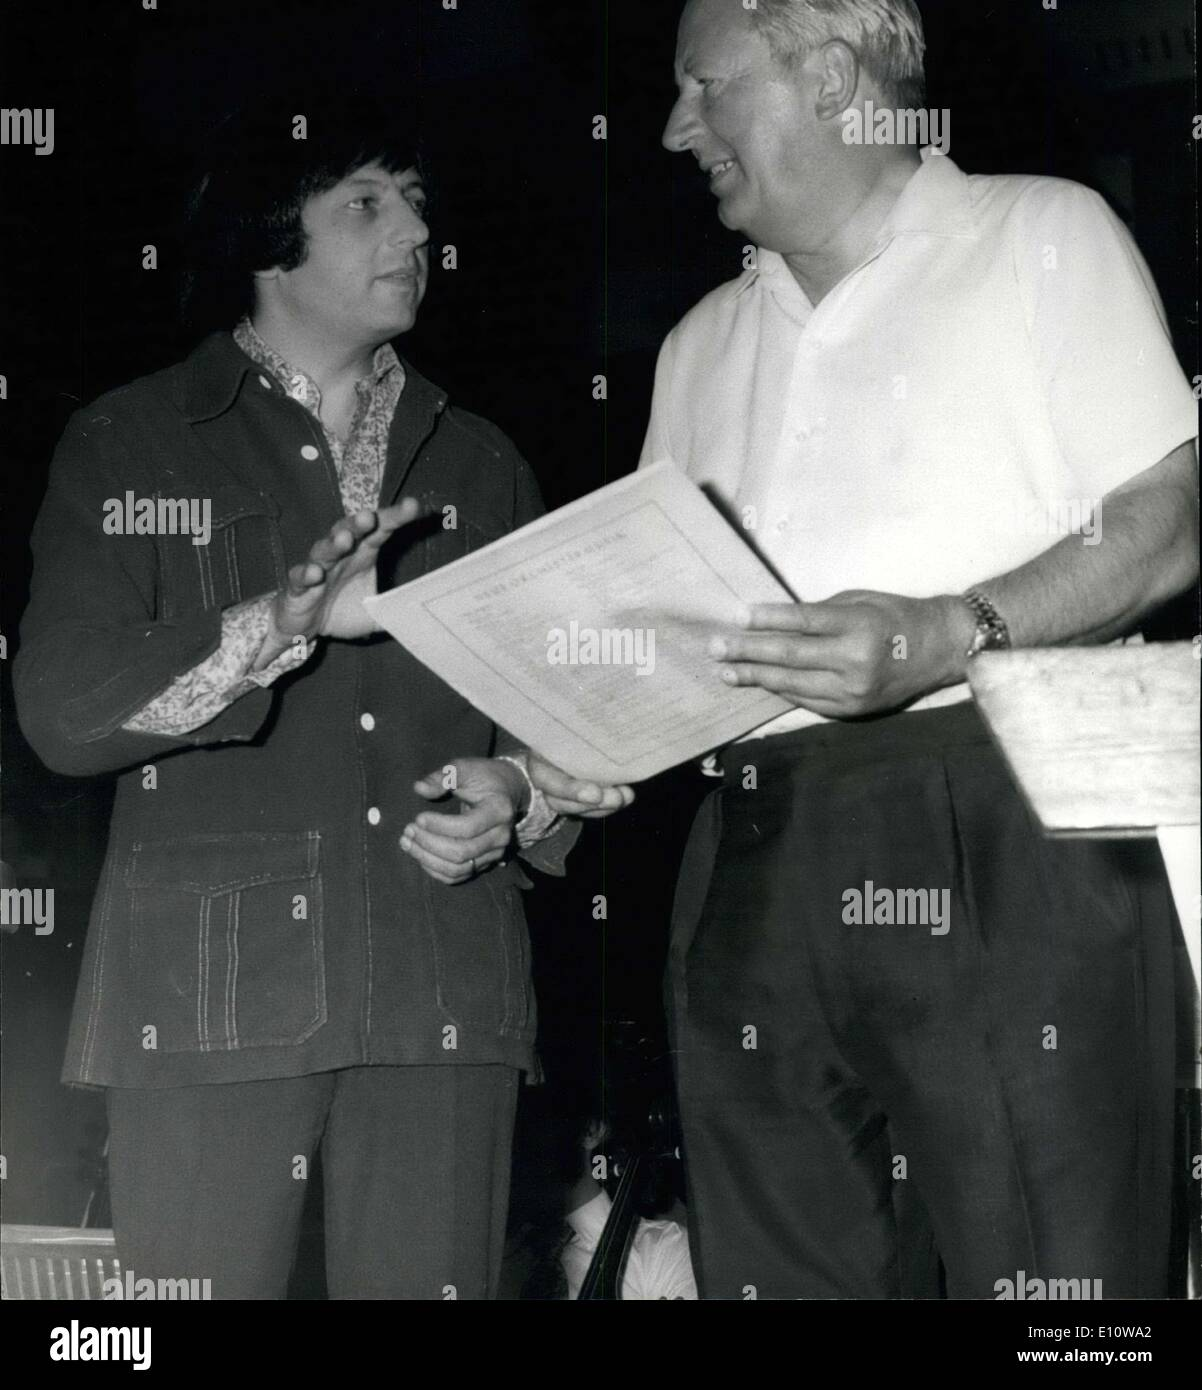 Jun. 10, 1974 - Mr. Heath Becomes Honorary Member of LSO. Conducts Wagner's Die Meistersinger Overture. Mr. Edward Stock Photo